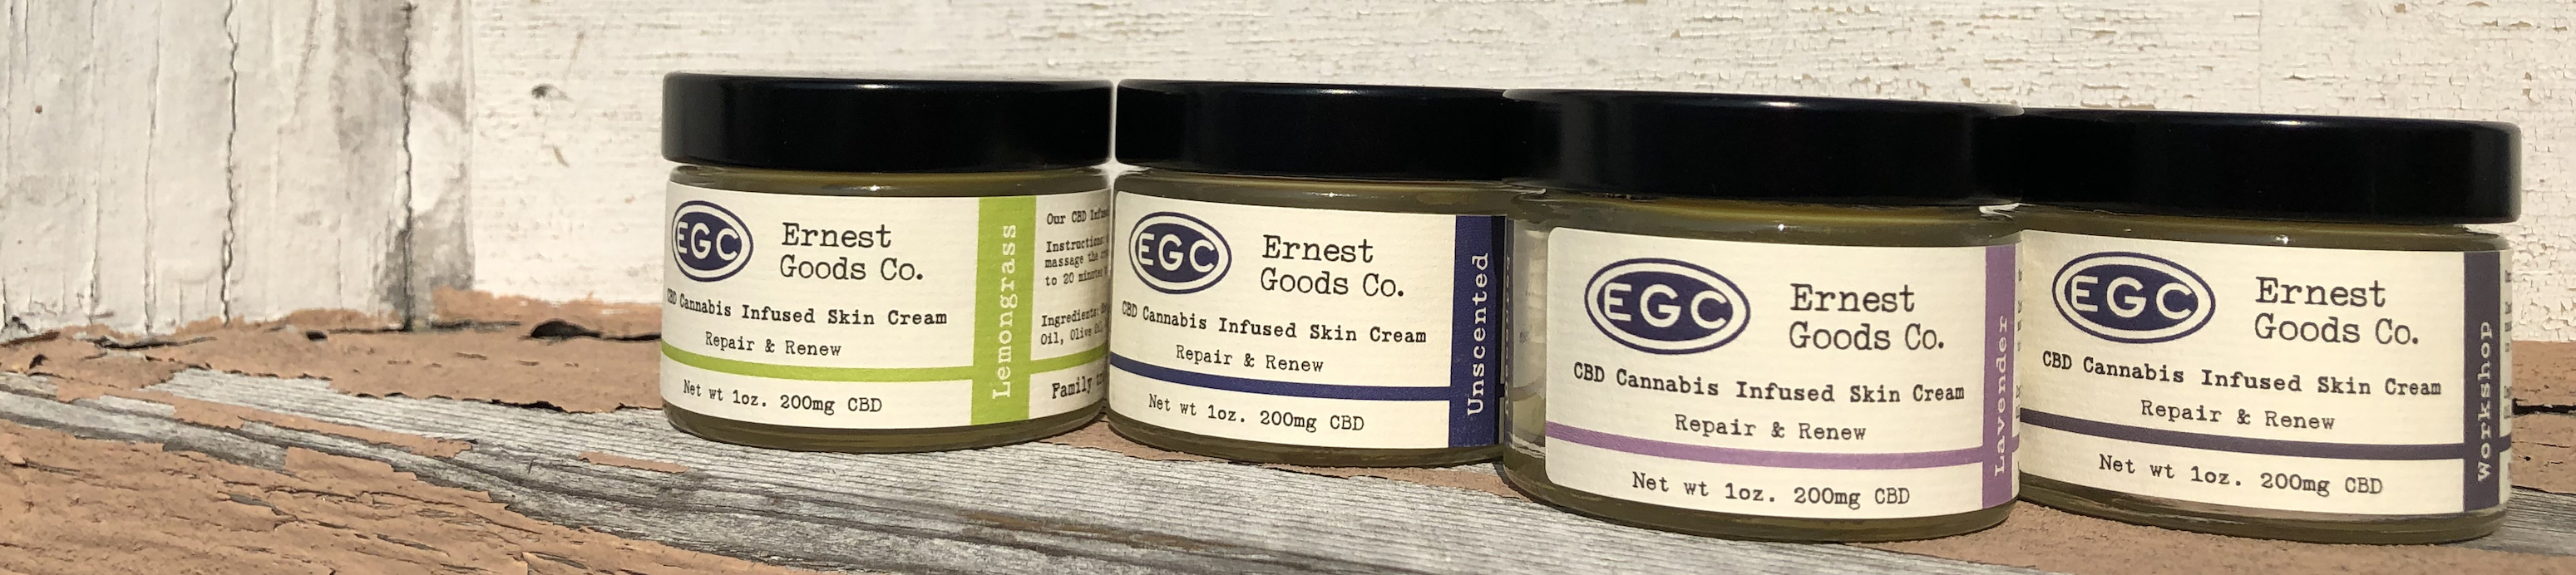 Ernest Goods Salves